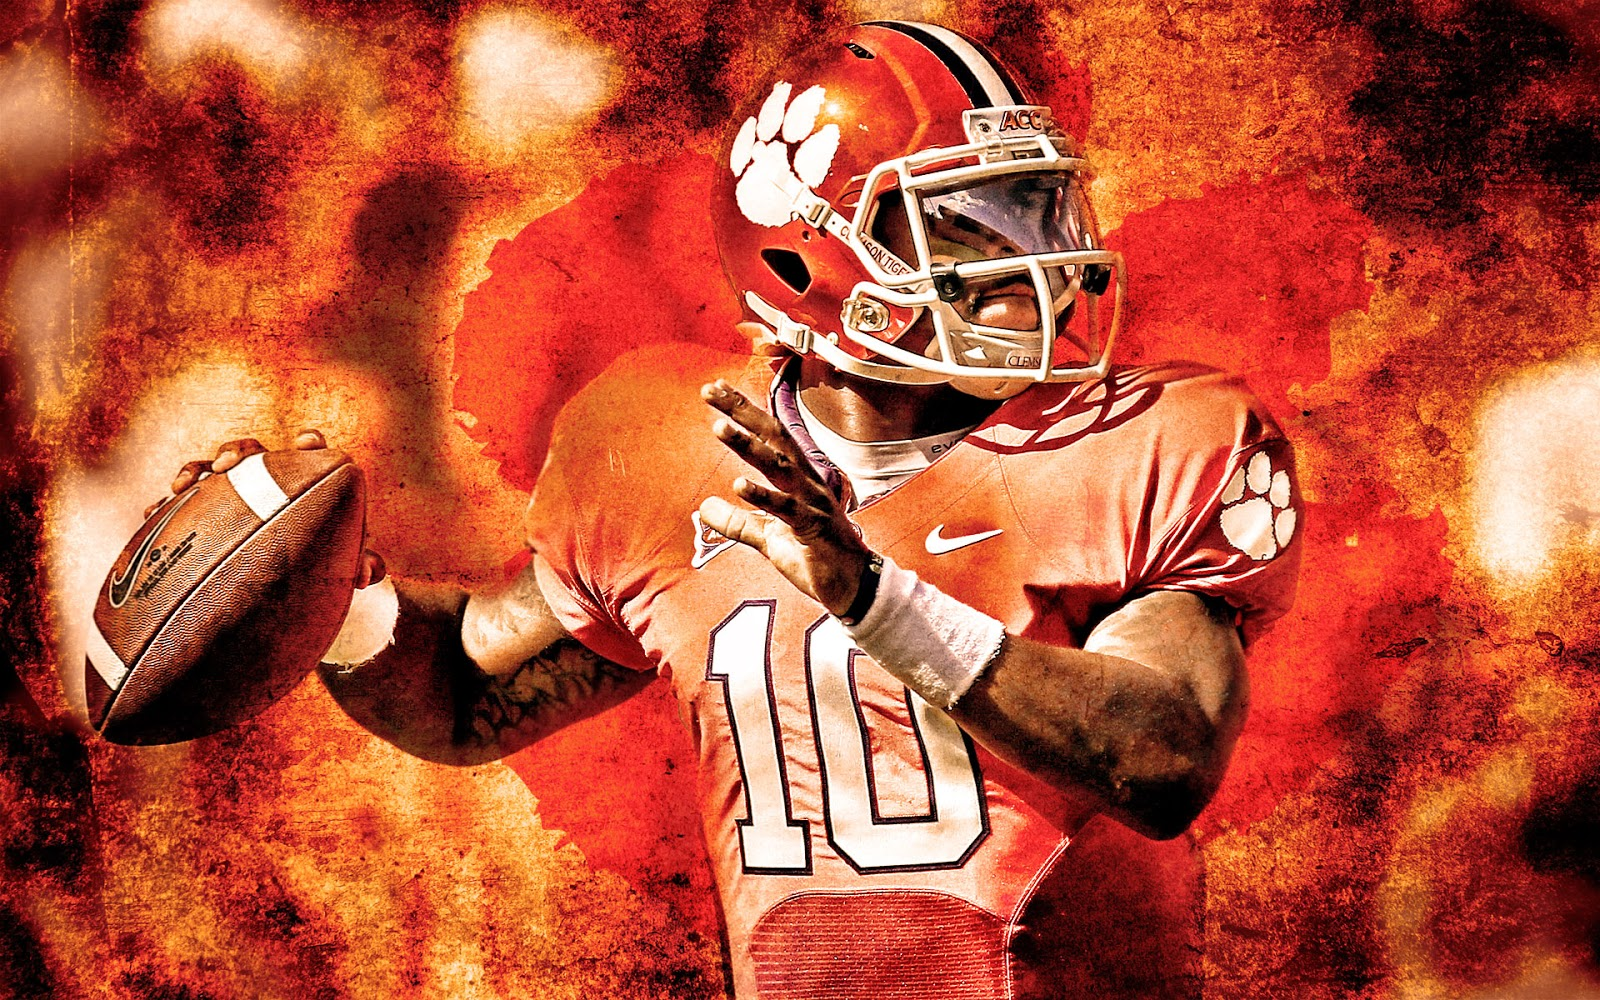 clemson tigers wallpaper relay wallpaper